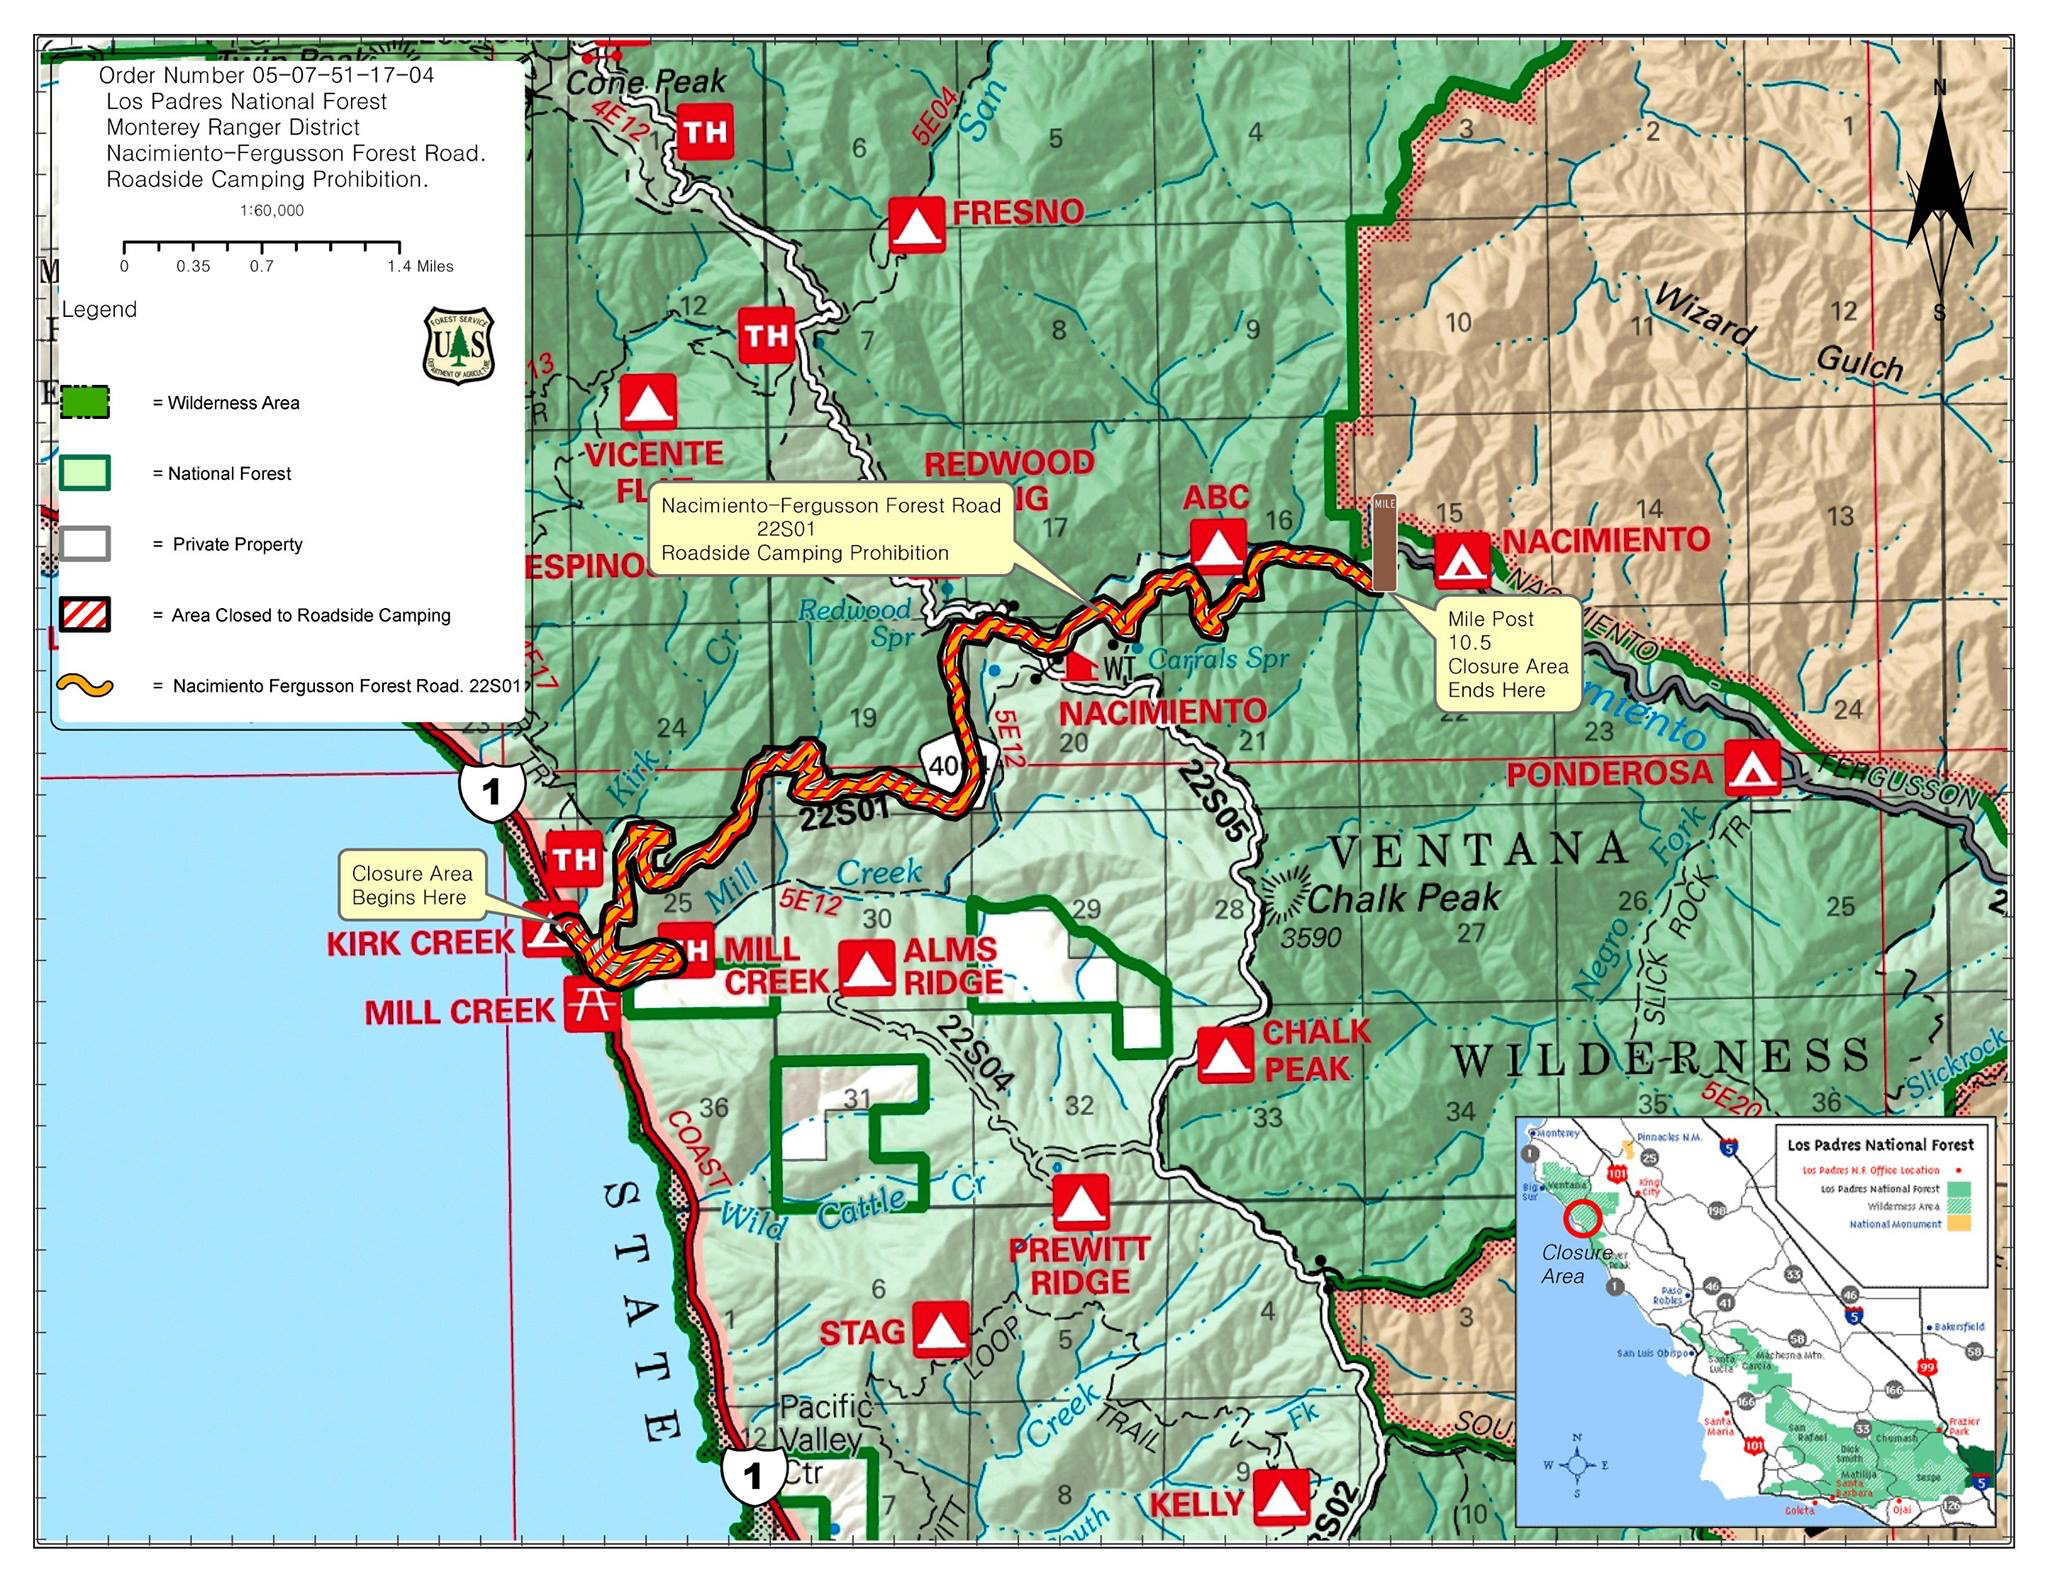 Highway 101 California Map.Highway 1 Conditions In Big Sur California